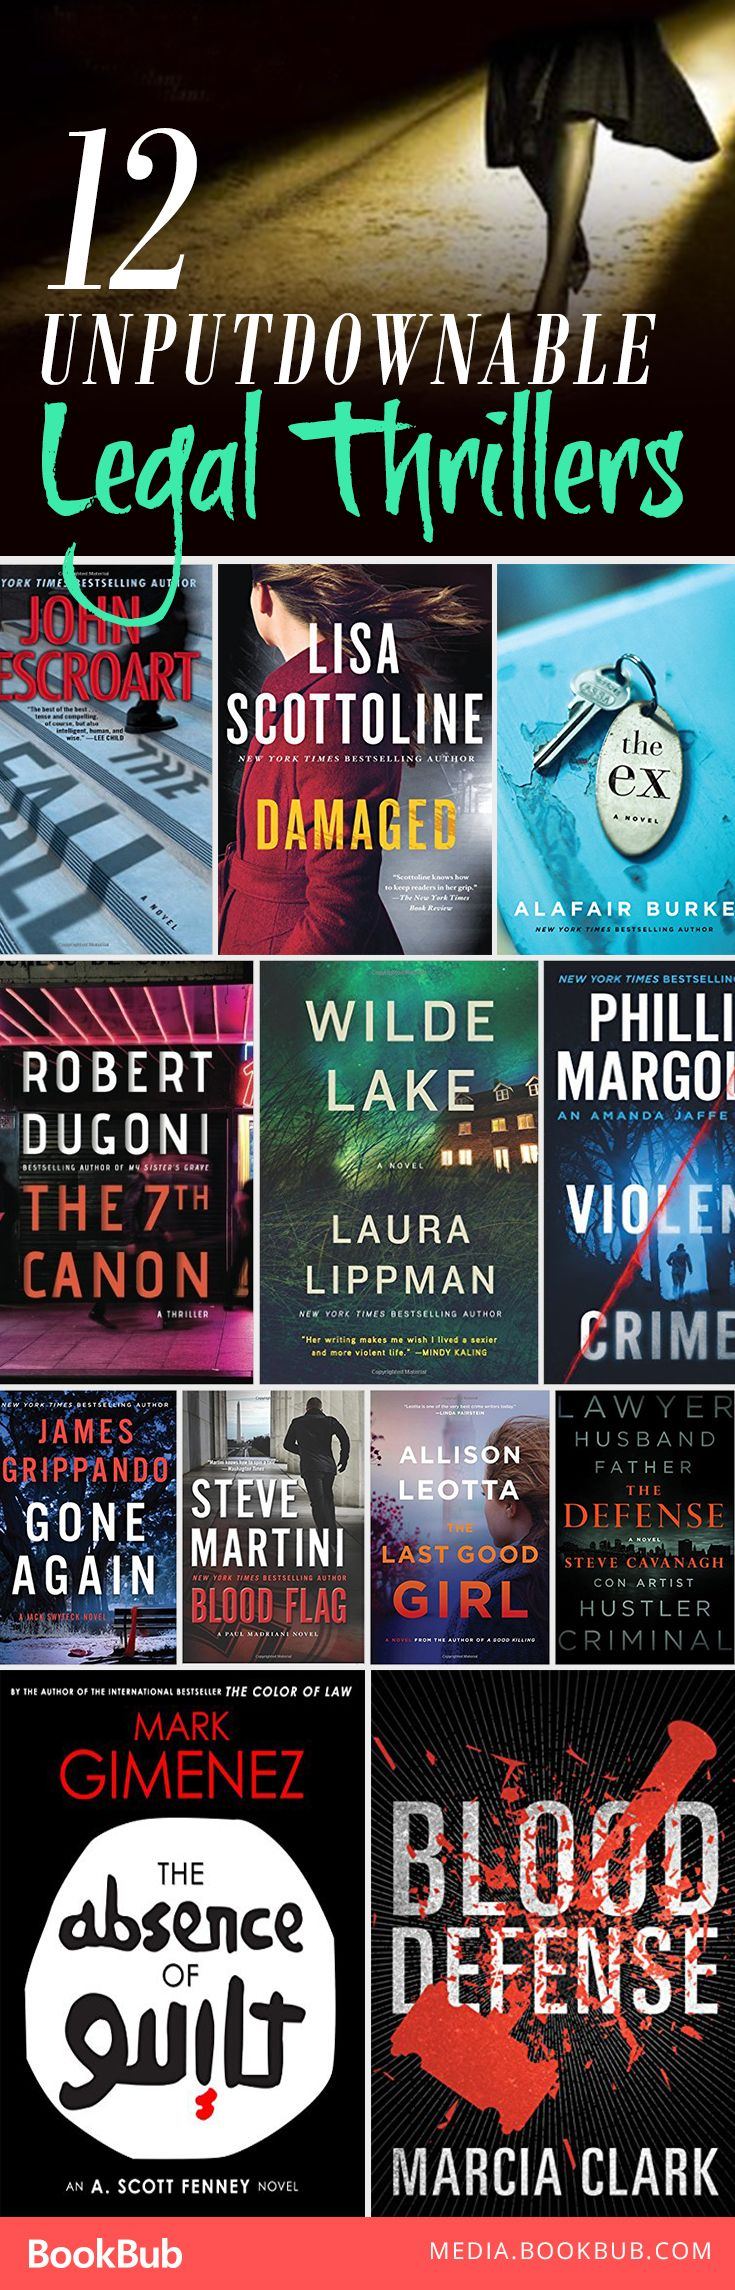 Looking for a book recommendation? Check out these 12 unputdownable legal thrillers.